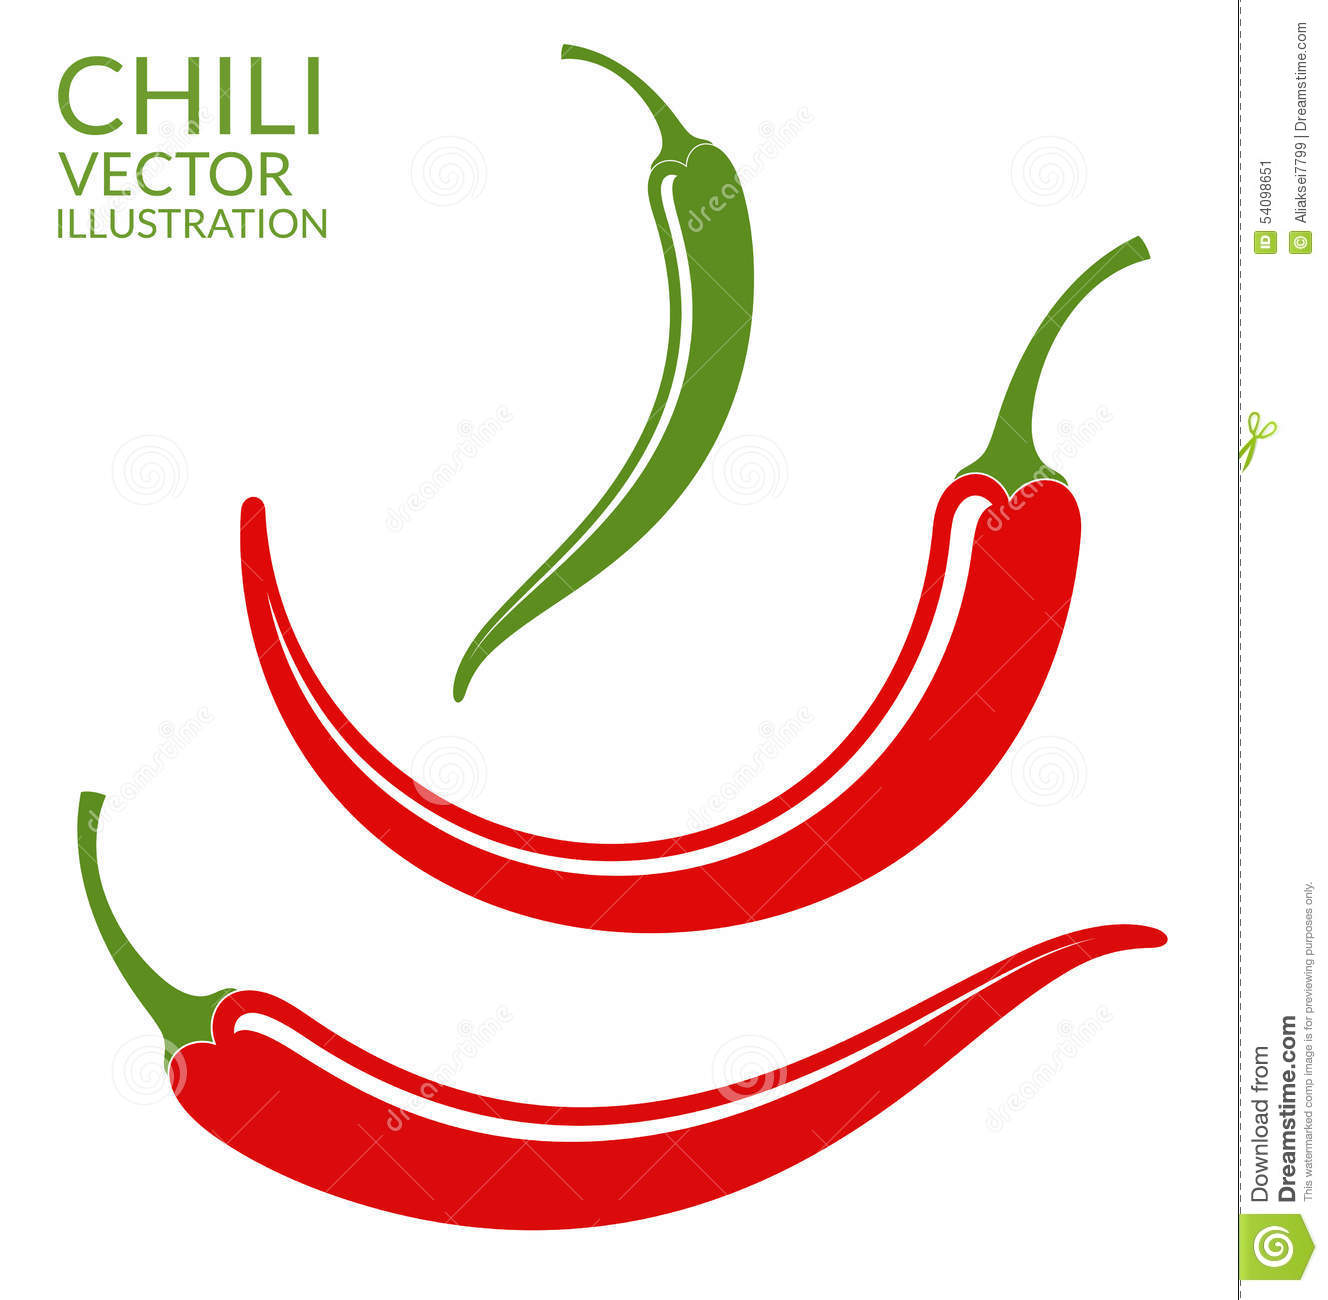 Chili Pepper Stock Illustration Image 54098651